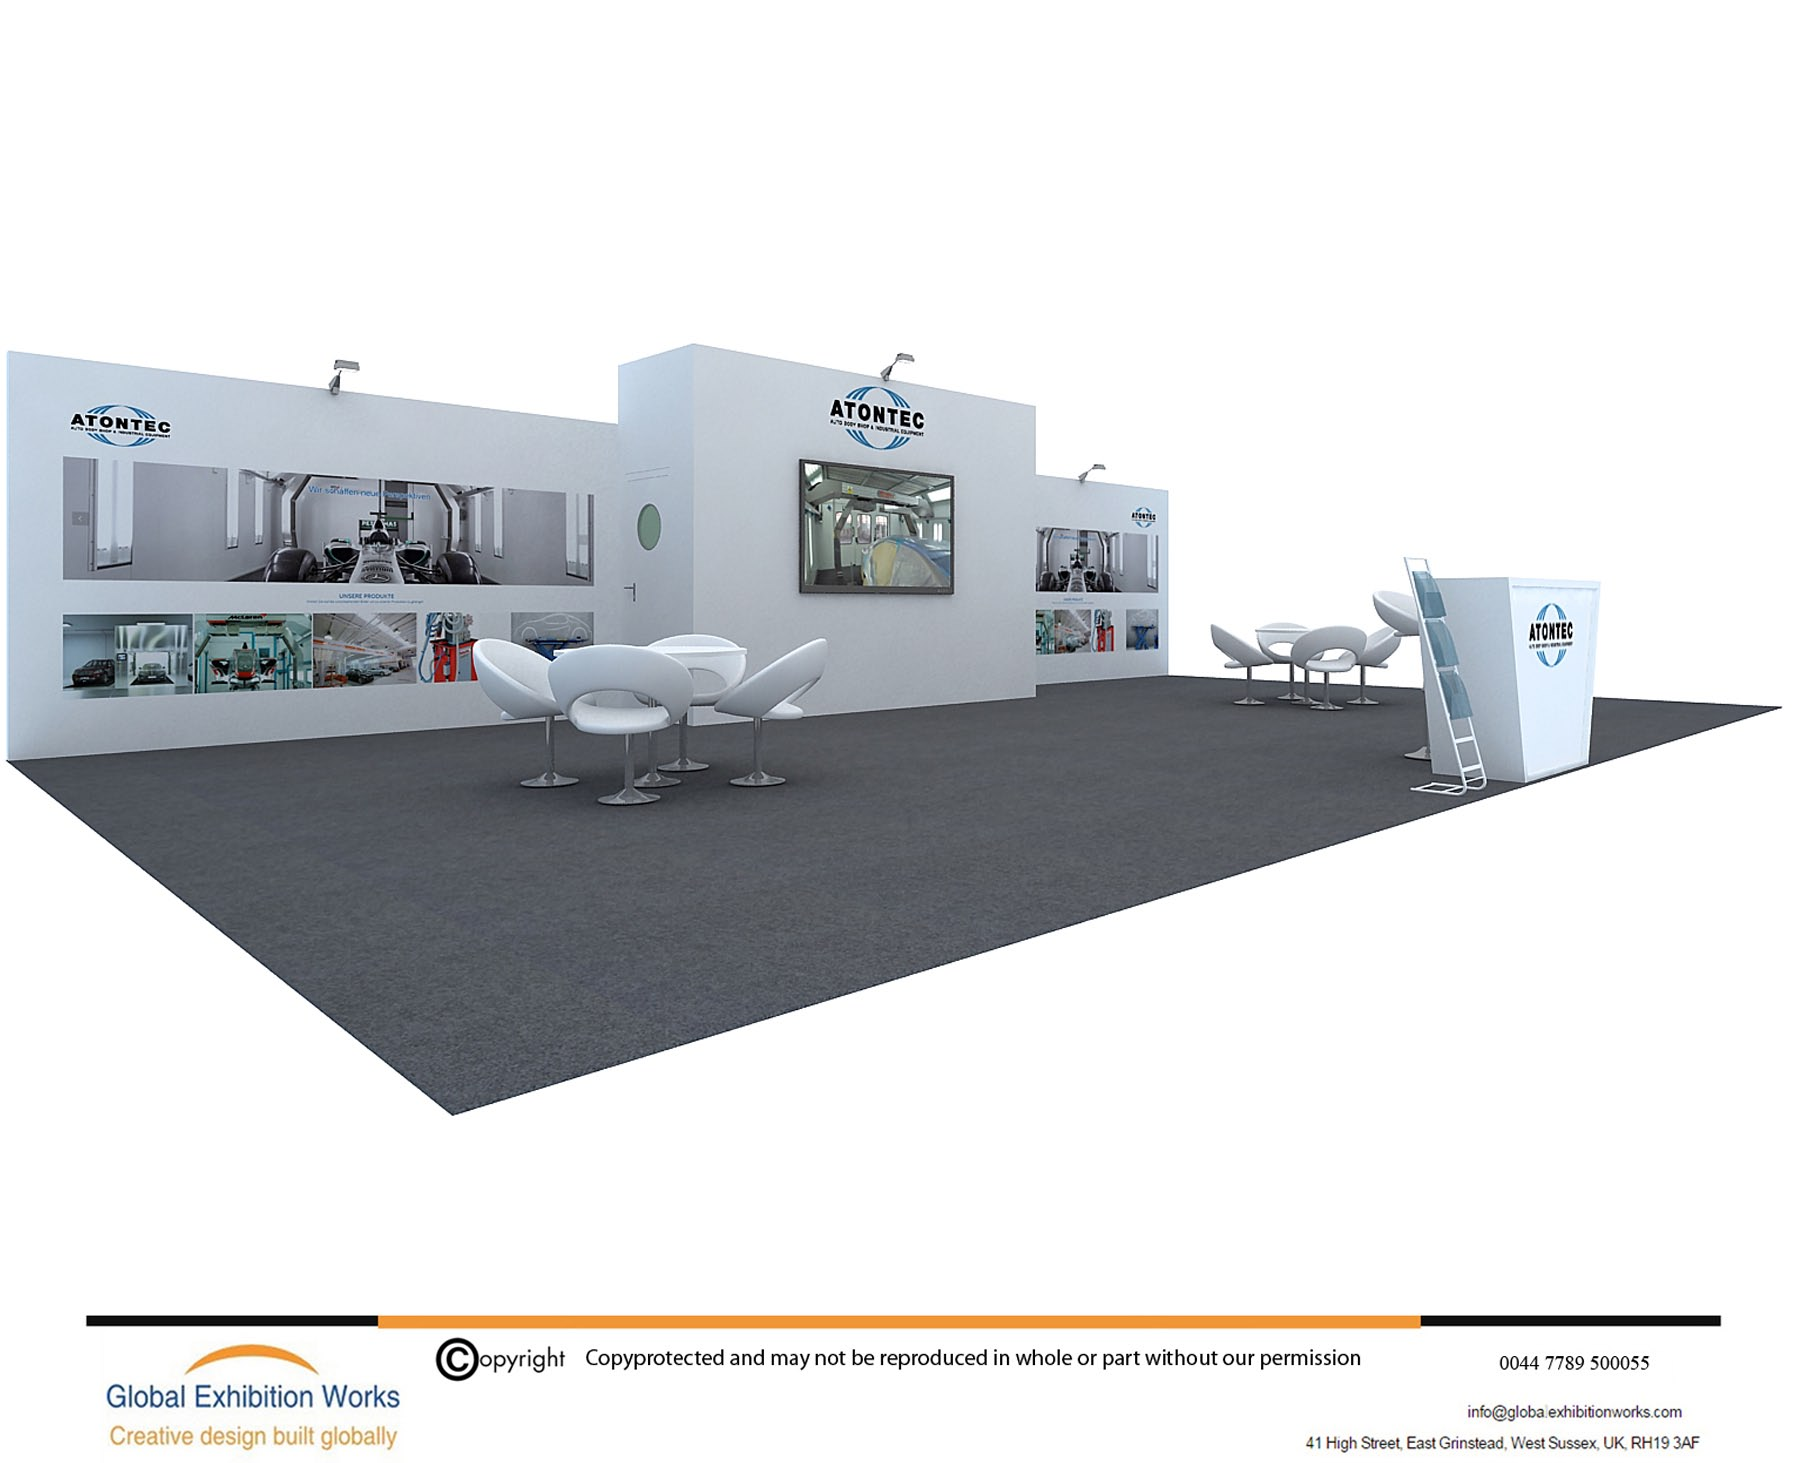 Exhibition builder in Cologne Germany